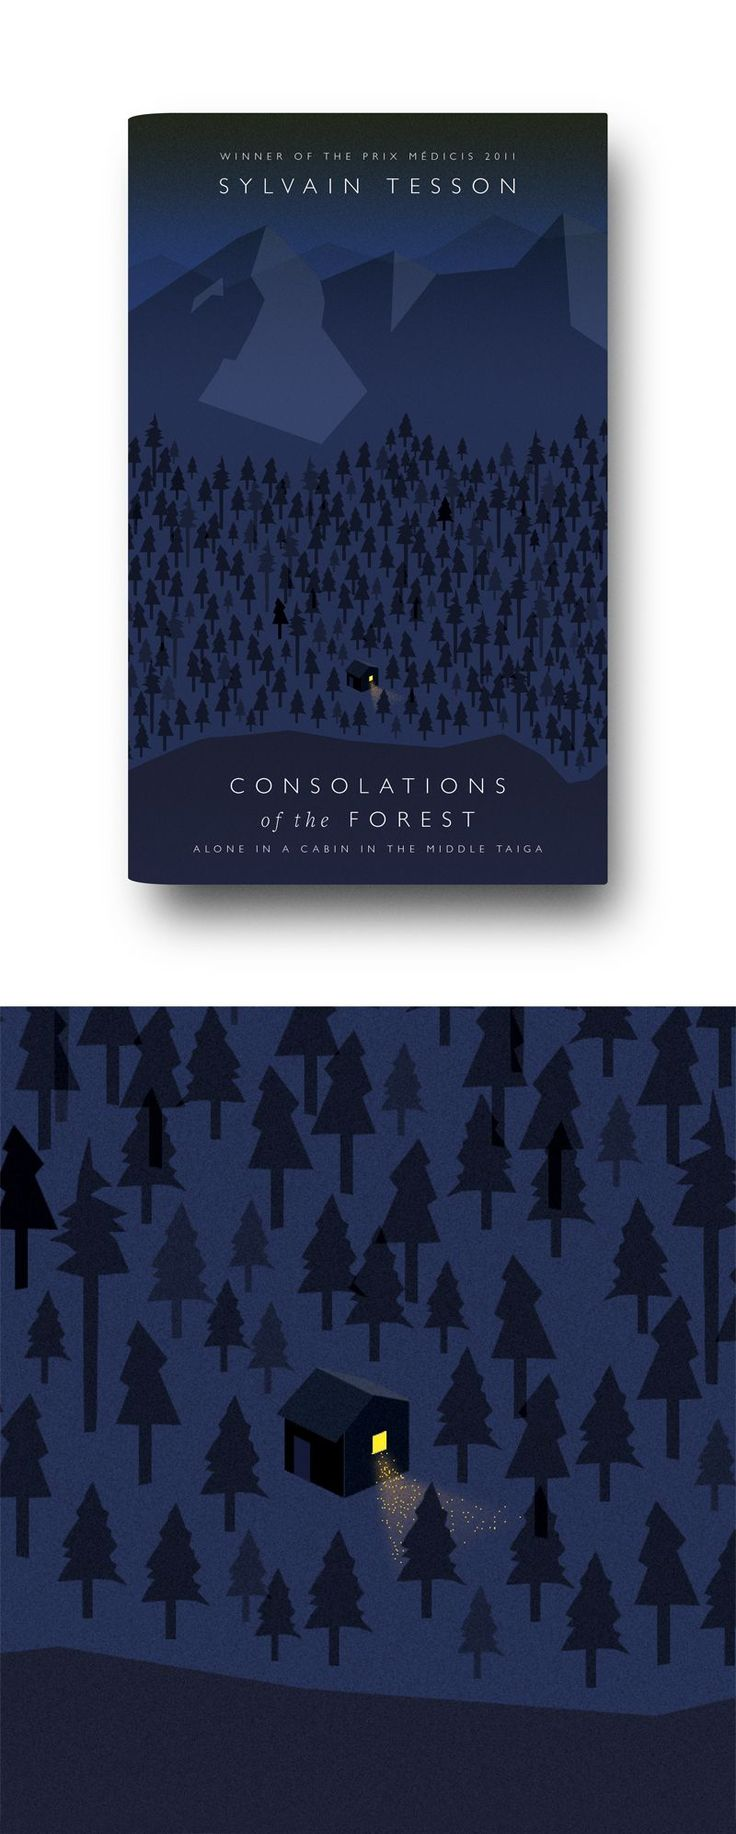 Consolations Of The Forest: Alone In A Cabin In The Middle Taiga By Sylvain  Tesson 2013 Hardback Cover Designed By Matthew Young Buy The Book Here